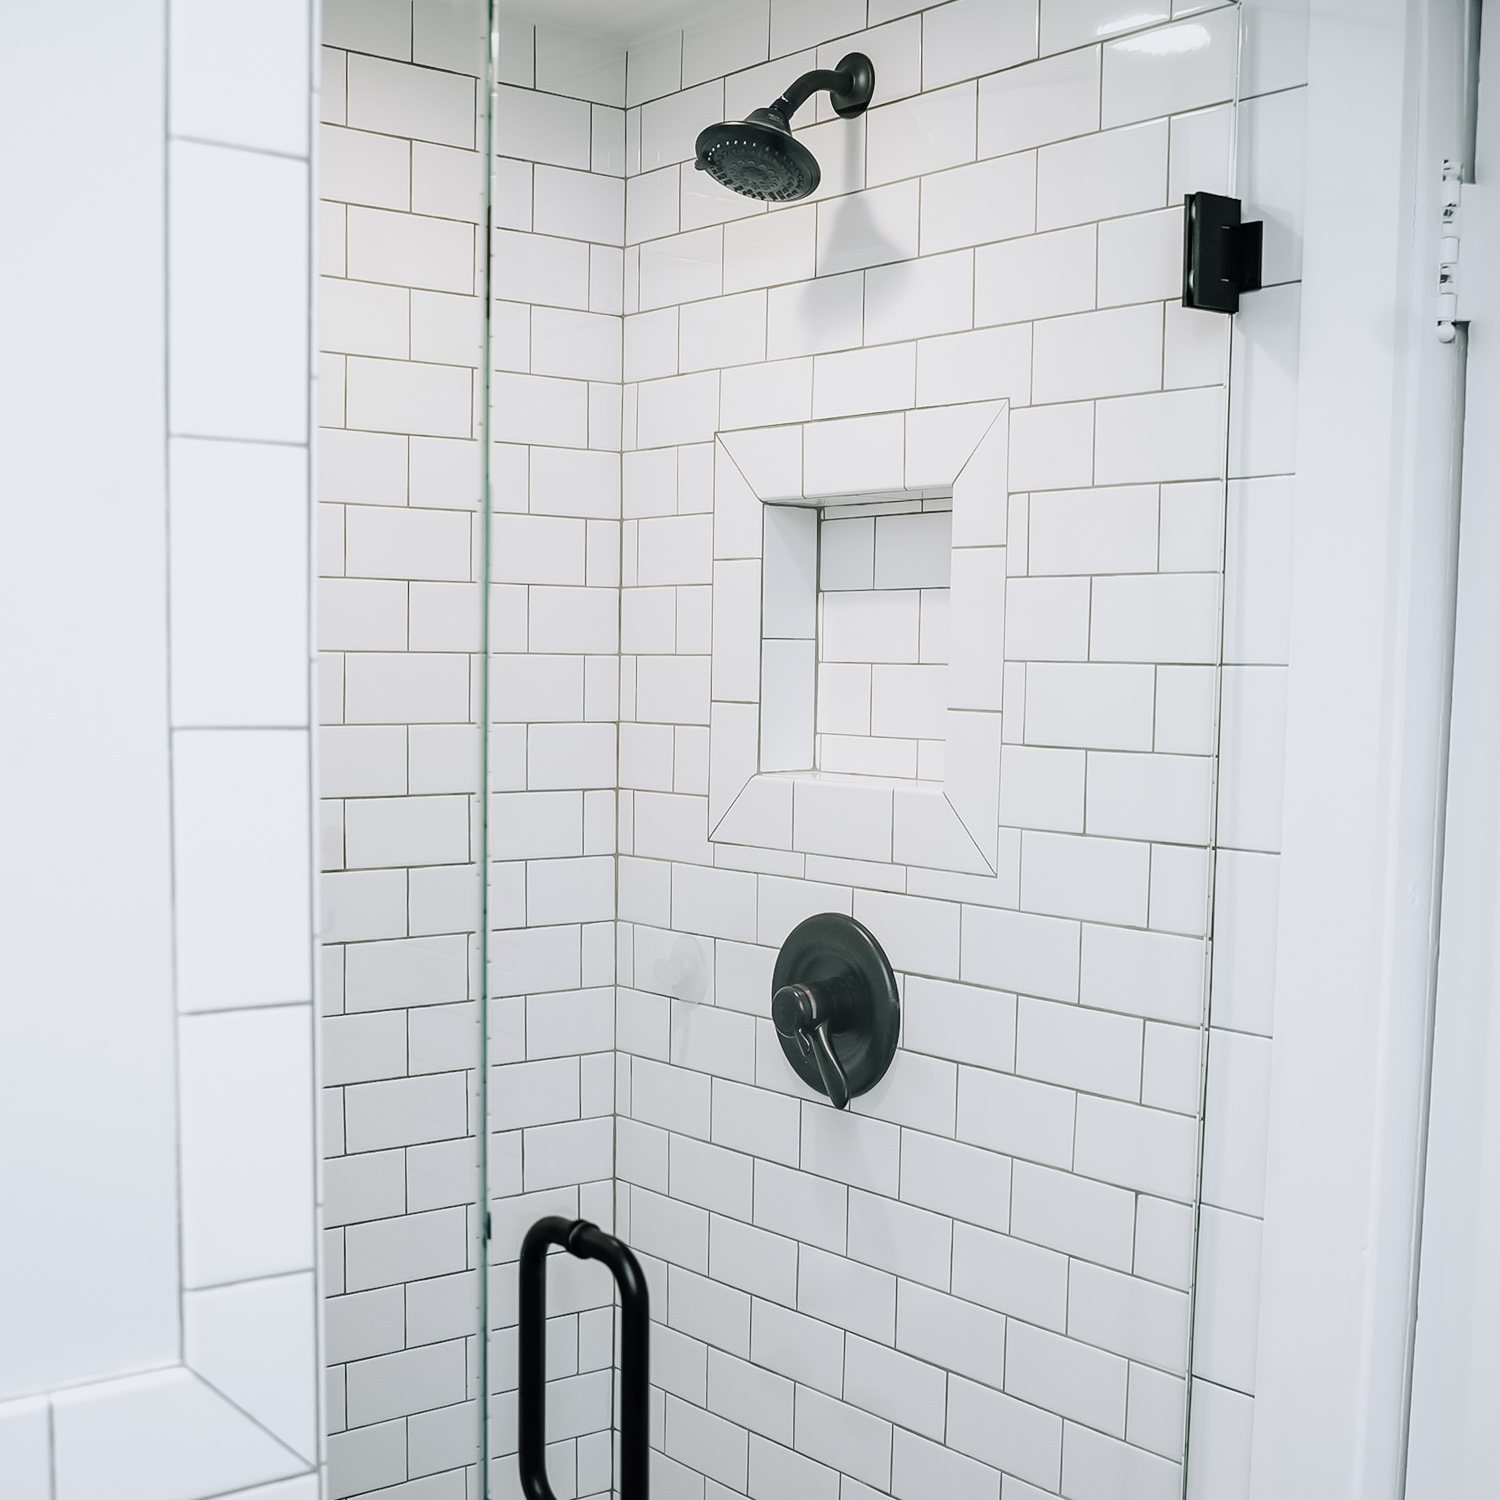 - The frameless glass shower doors add to the elegance of this space, where the hexagon floor tile makes another appearance, this time in a smaller scale. The tiled recessed shelf is artfully framed out, creating stylish shower storage. The Venetian Bronze fixtures lend an air of elegance.